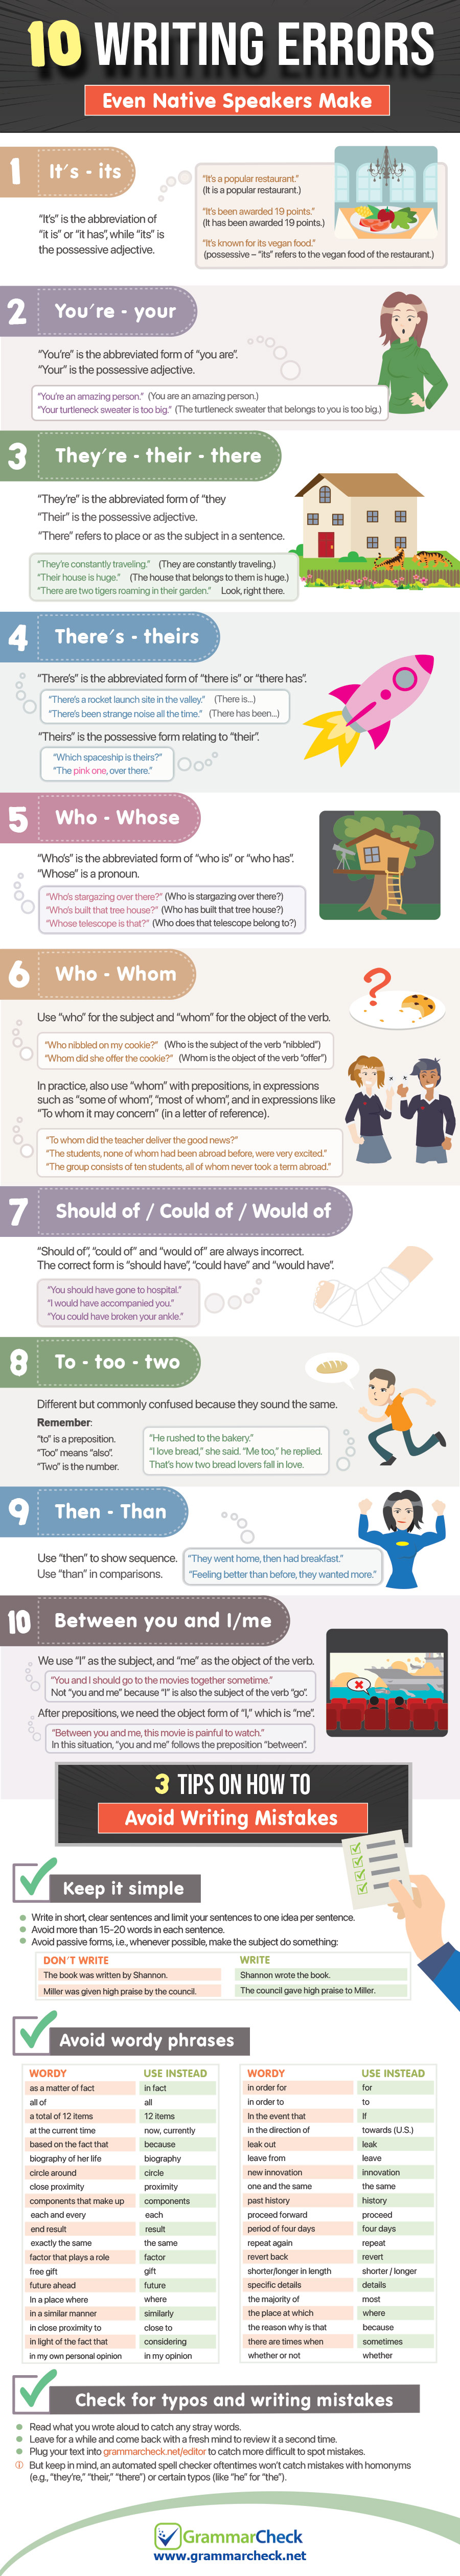 10 Writing Errors Even Native Speakers Make (Infographic)